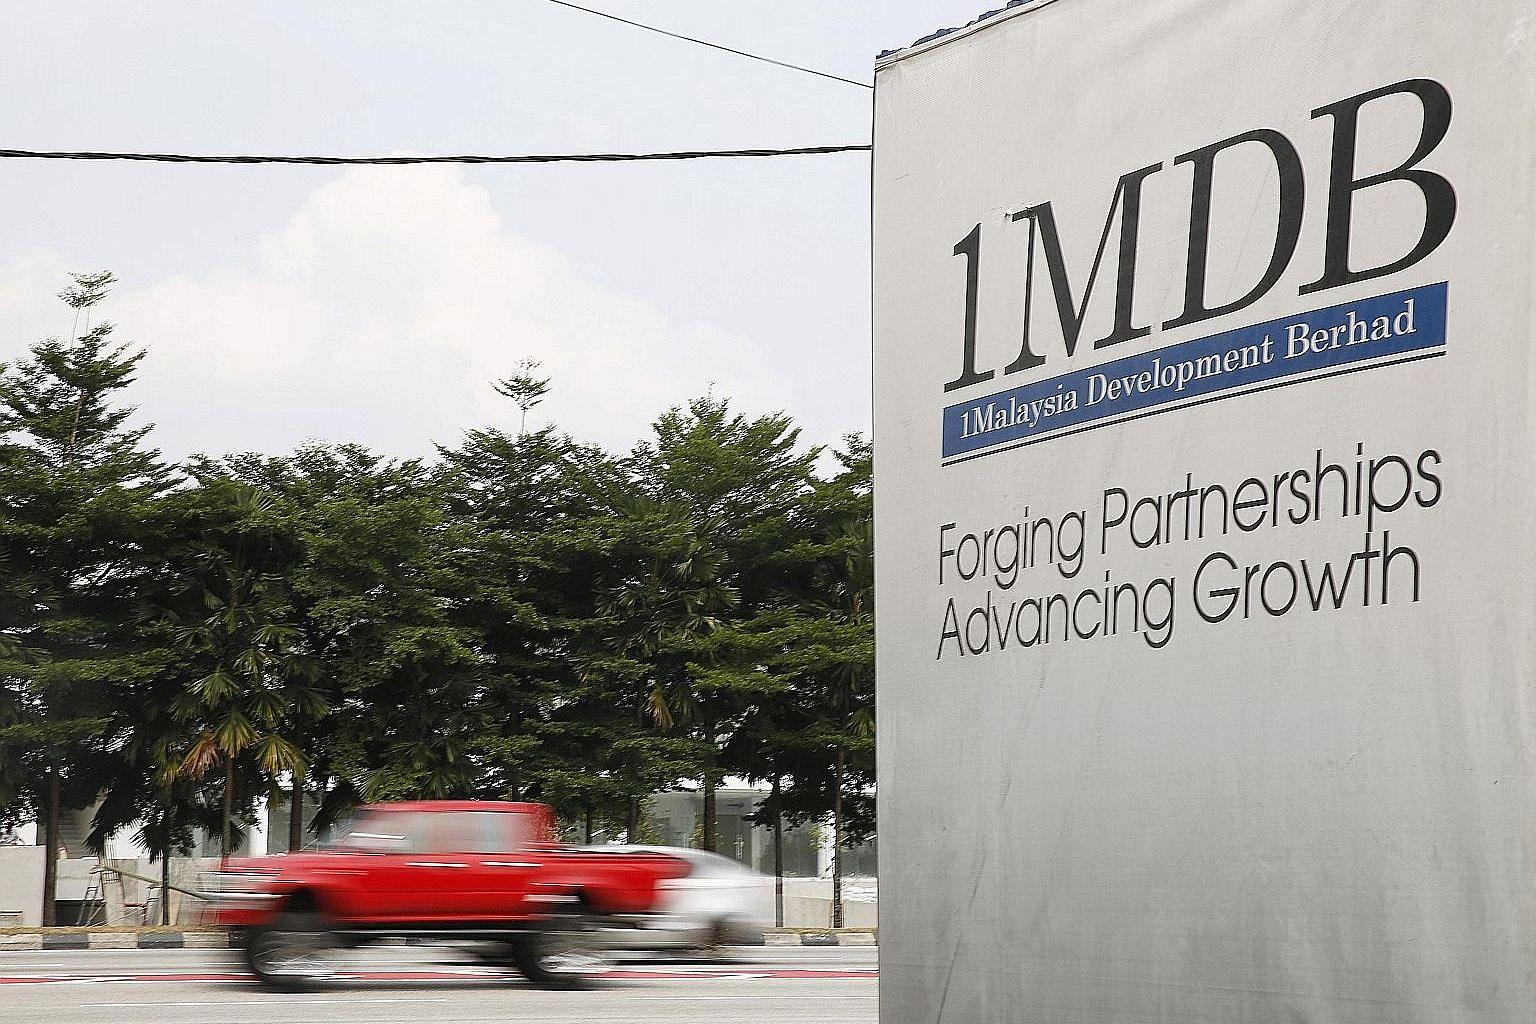 Investigators have summoned former and current directors and officials of 1Malaysia Development Berhad for questioning, and slapped travel bans on several of them, government officials said.